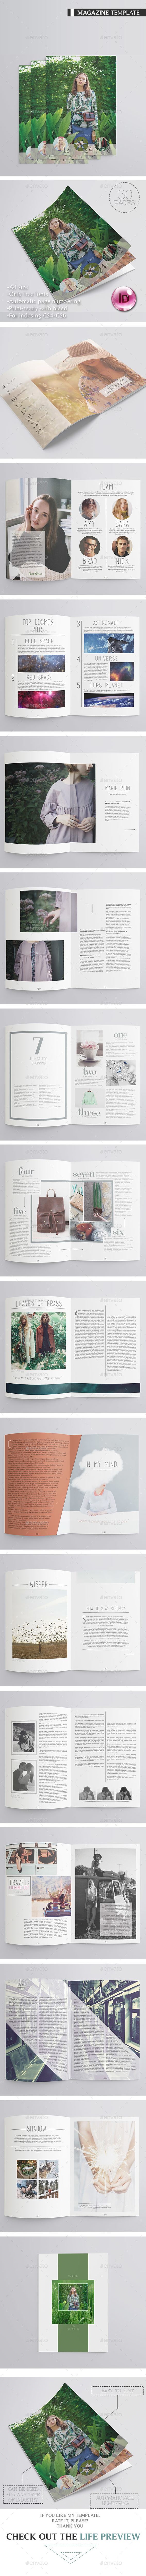 Simple Magazine 30 Pages - Magazines Print Templates